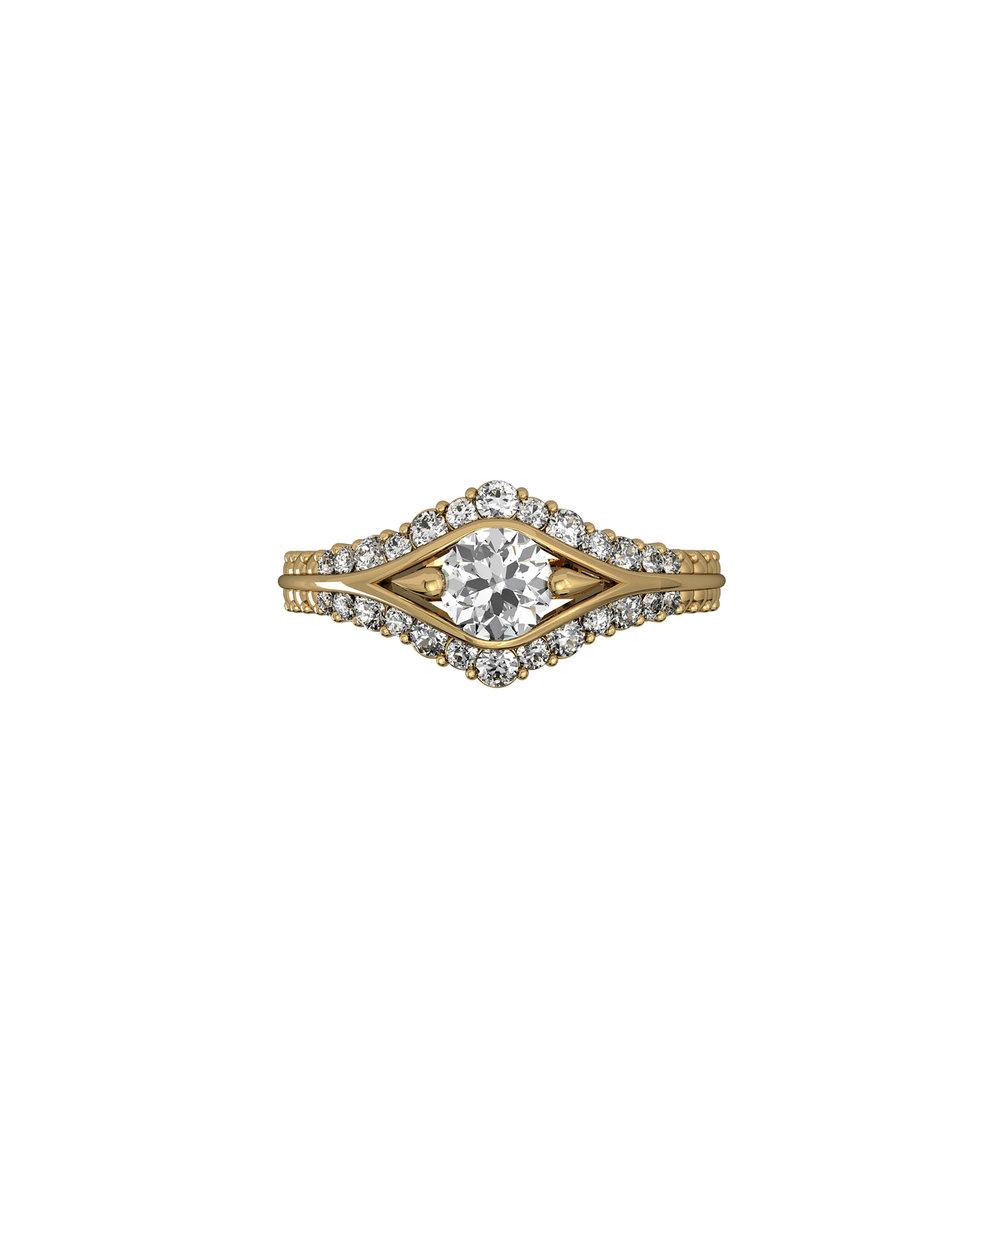 designer diamond bridal jewelry--12.jpg